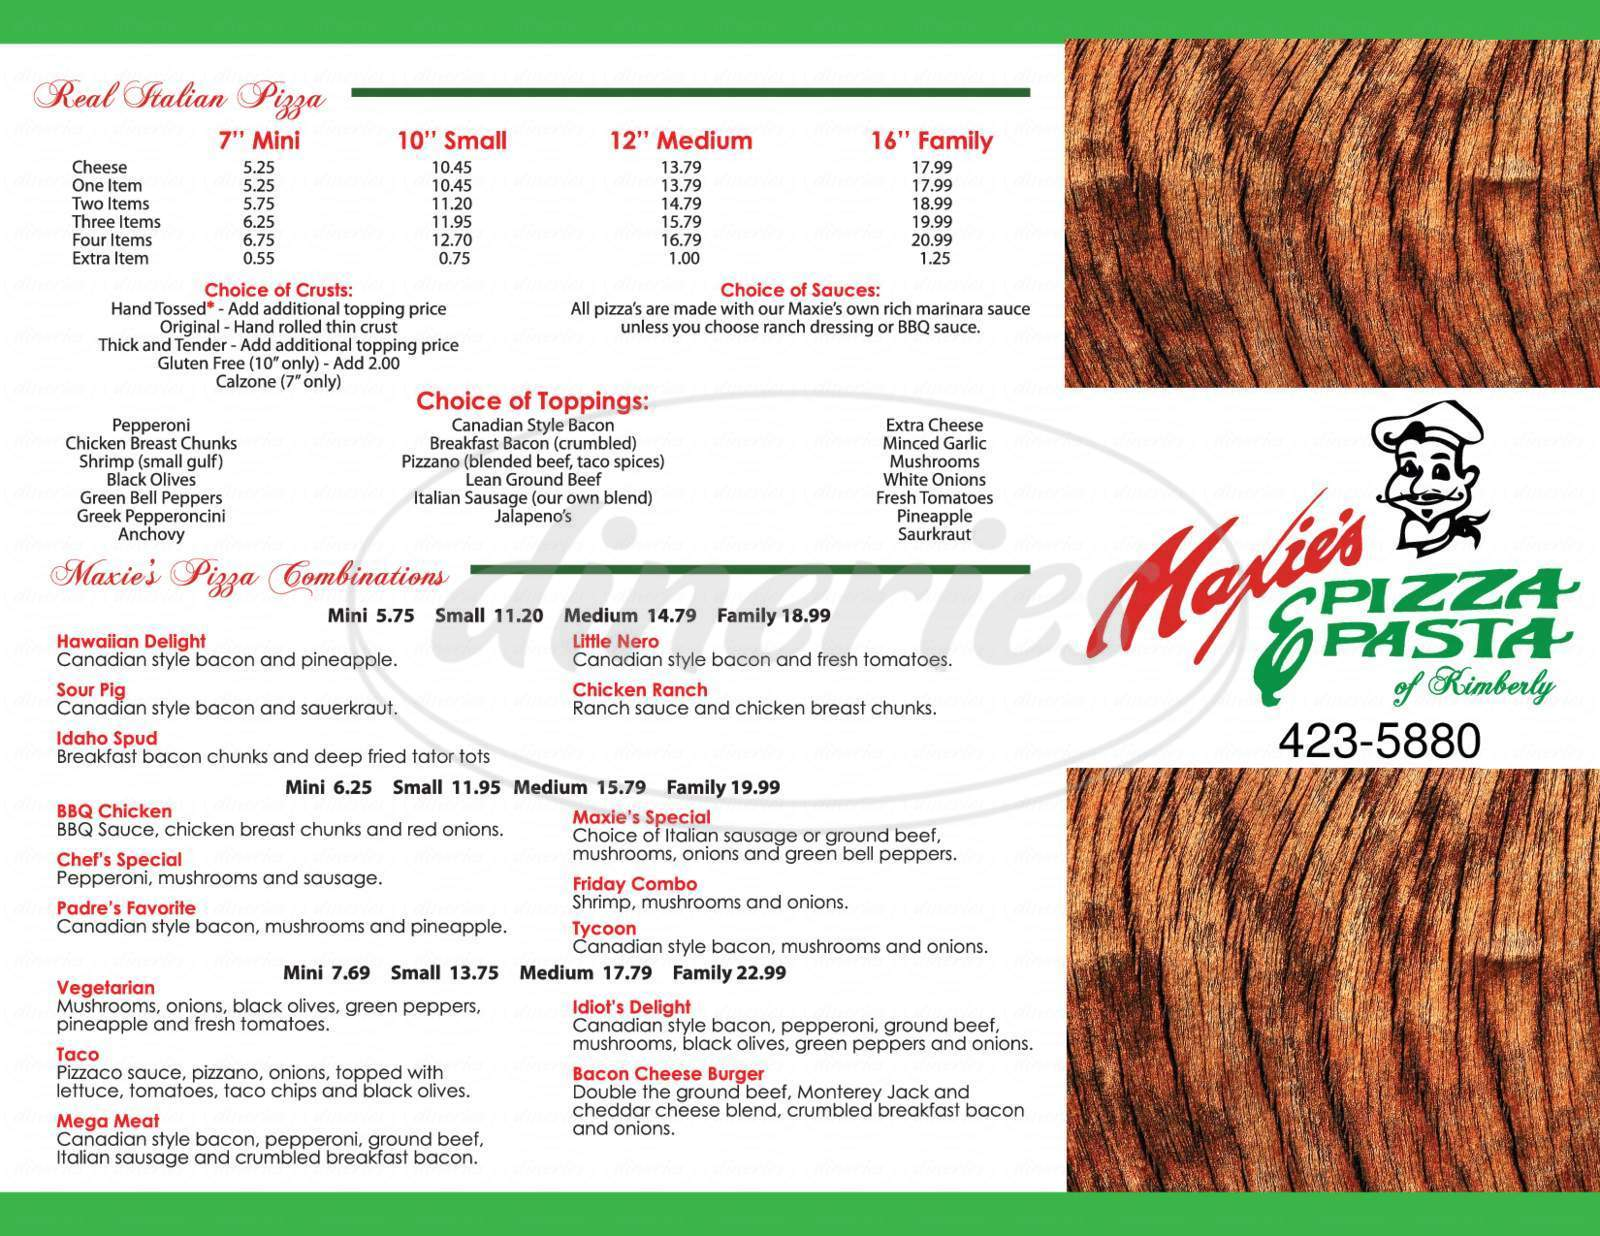 menu for Maxie's Pizza & Pasta of Kimberly